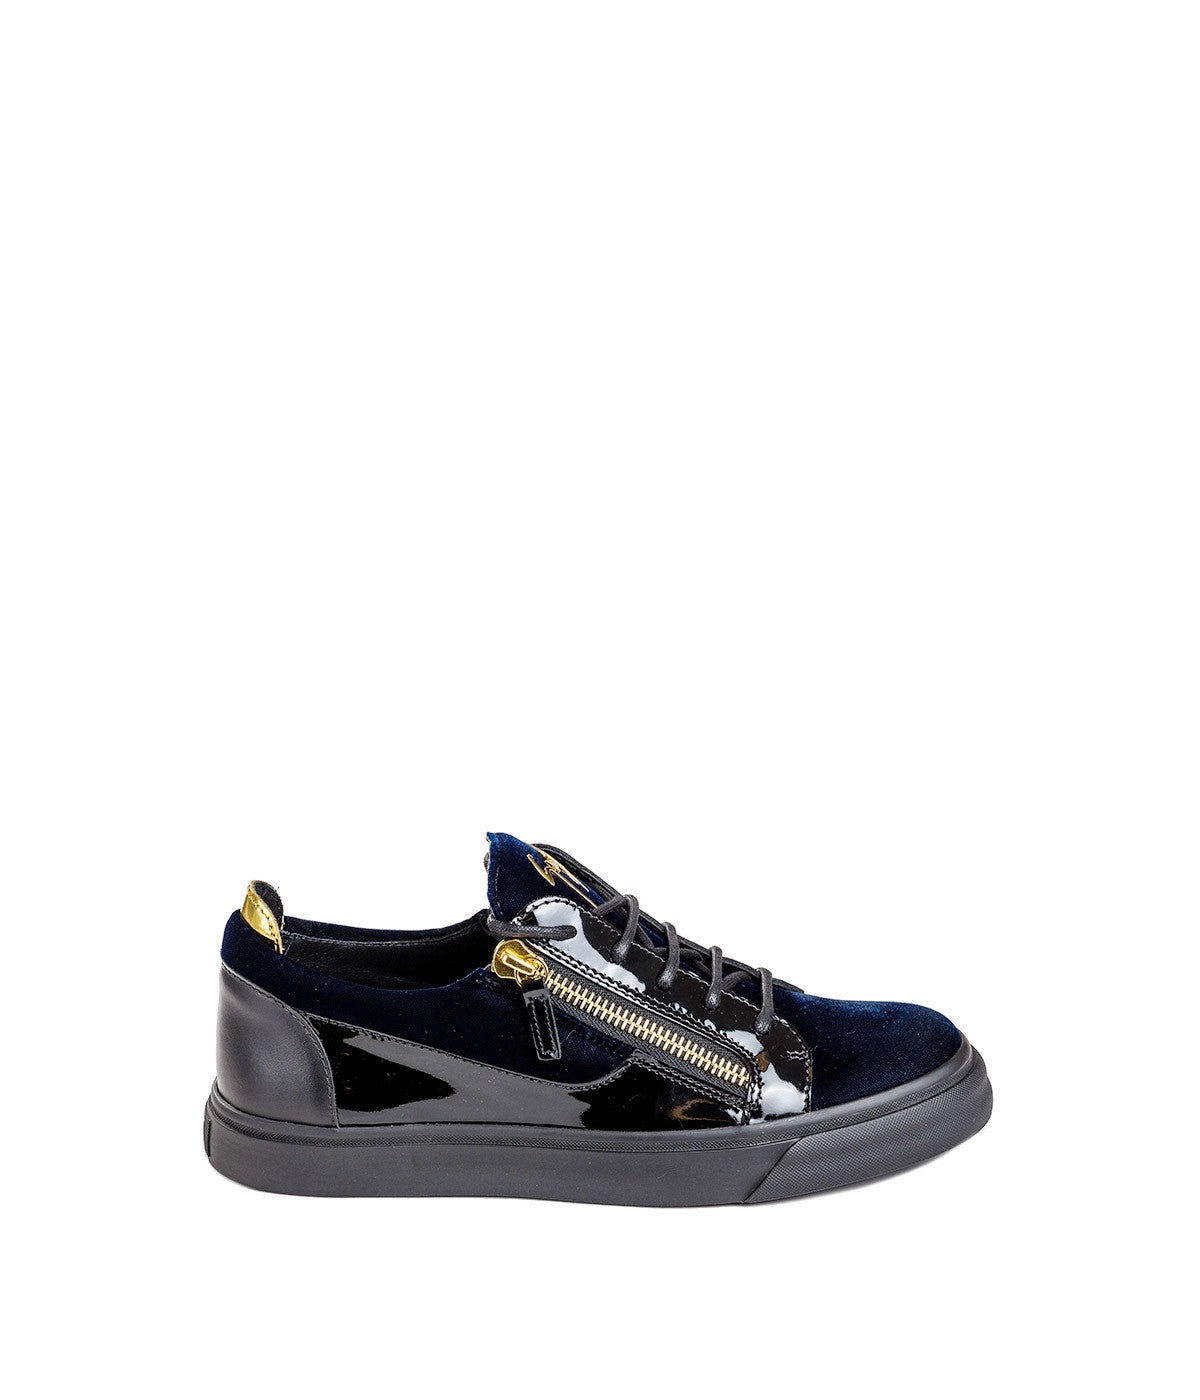 Navy 'Londpn' Low-Top Sneakers